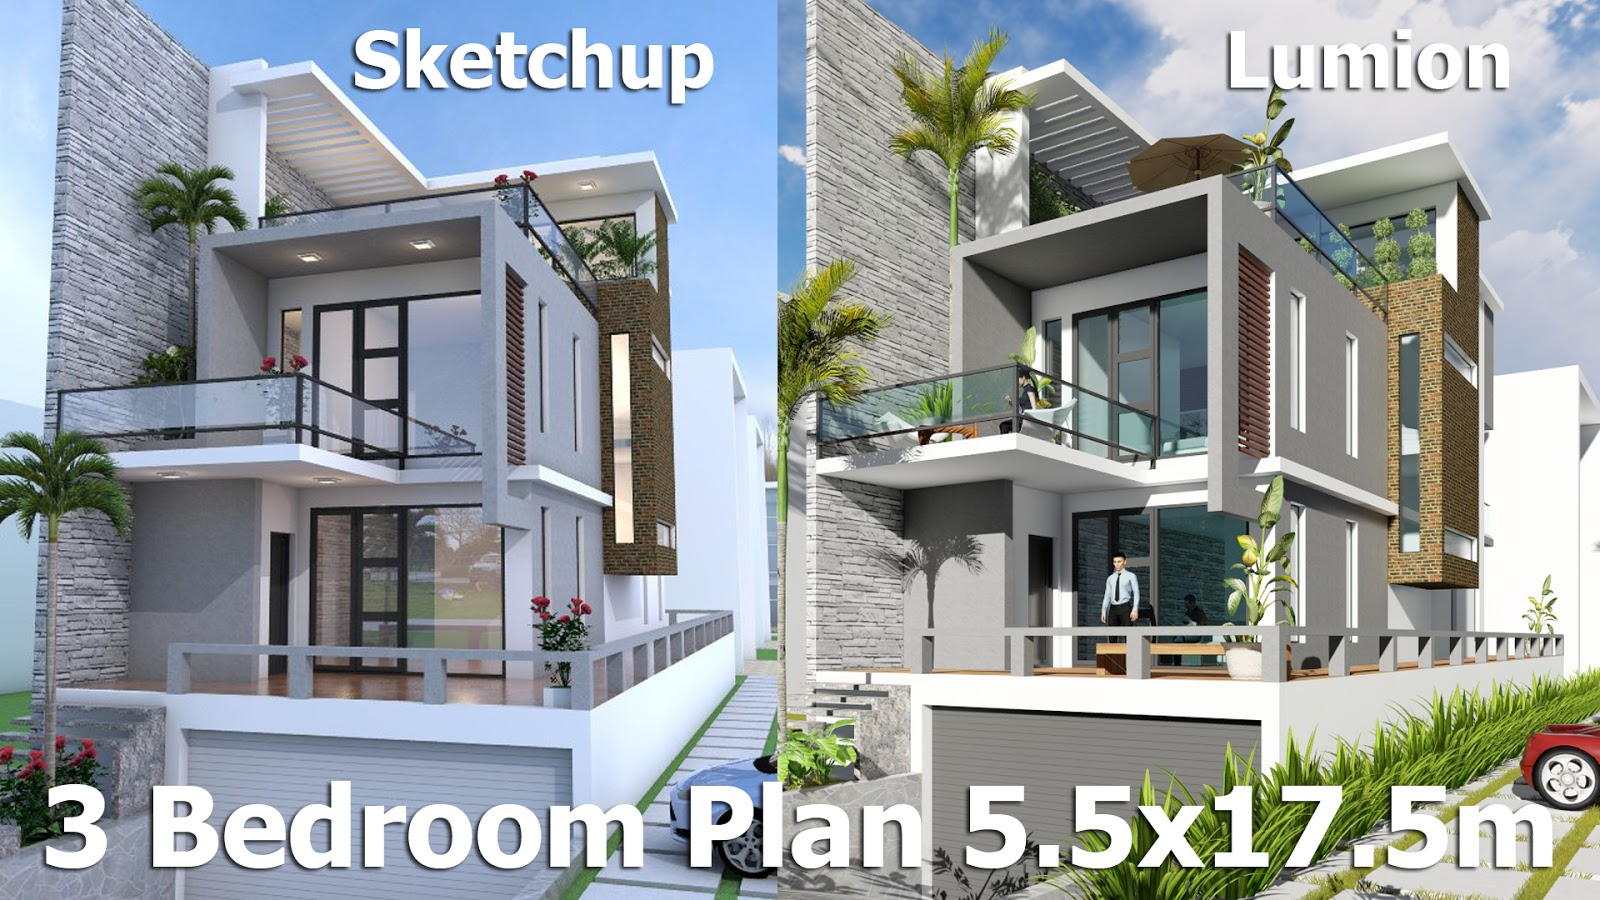 Sketchup modeling 3 stories exterior house design with for 3 story home plans and designs